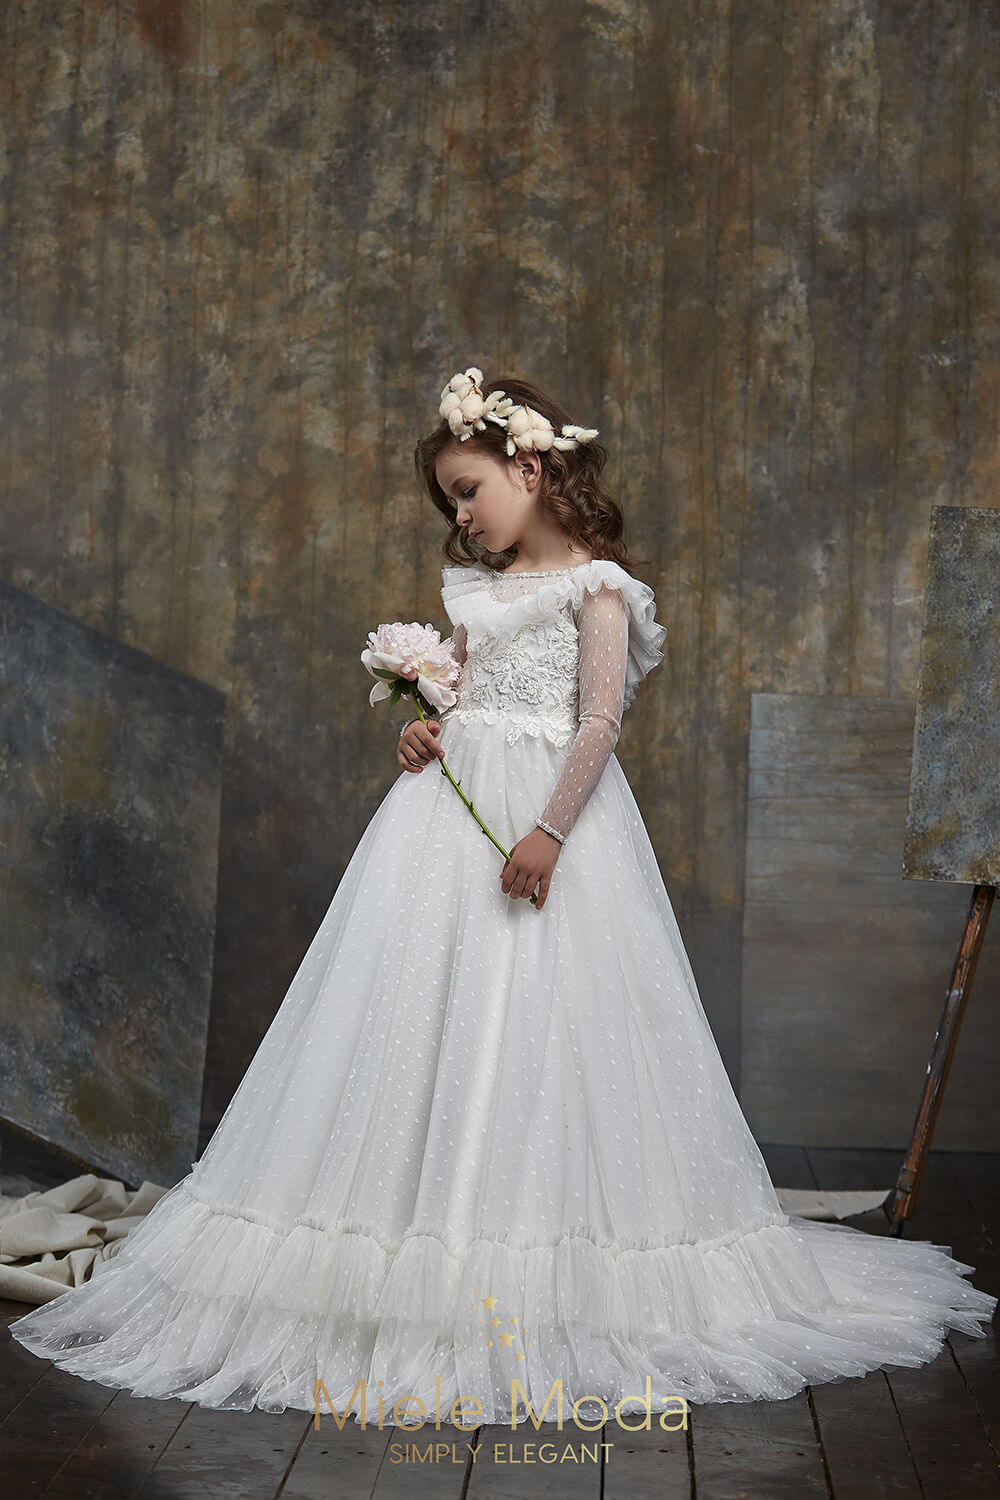 Pretty girl wearing Melania Flower Girl Dress Wedding Lace Dress-by Miele Moda Boutique